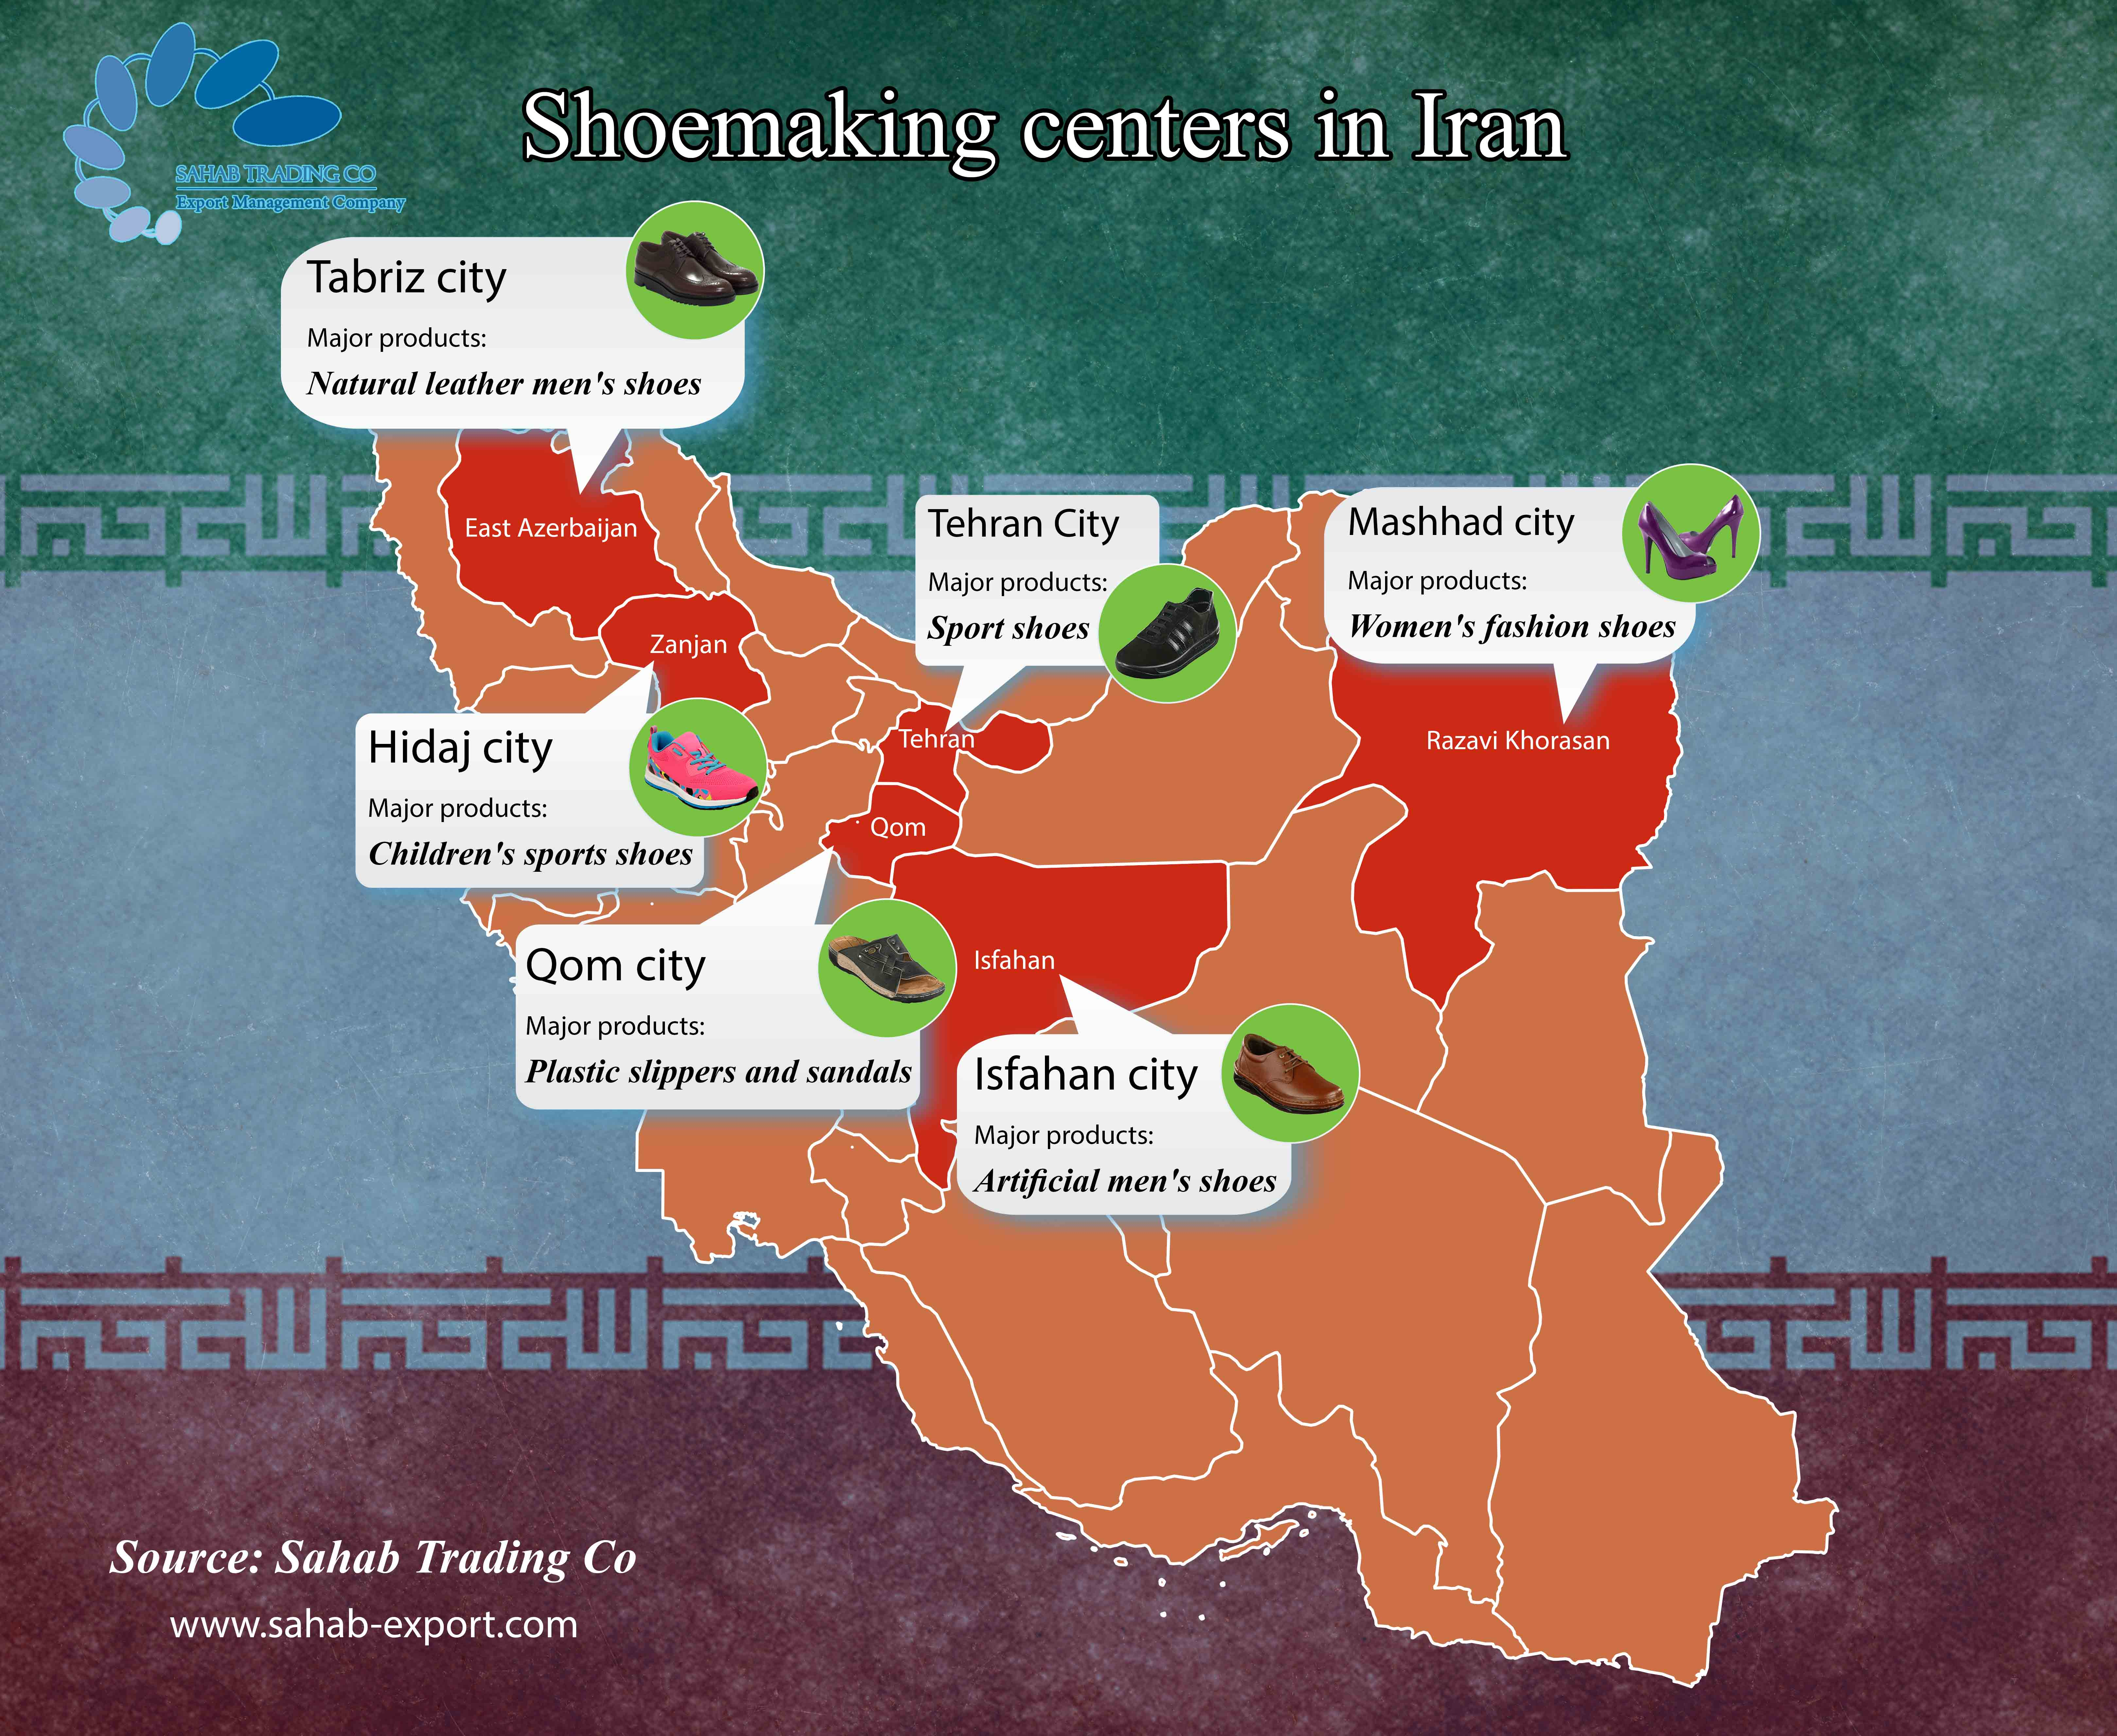 Shoemaking centers in Iran